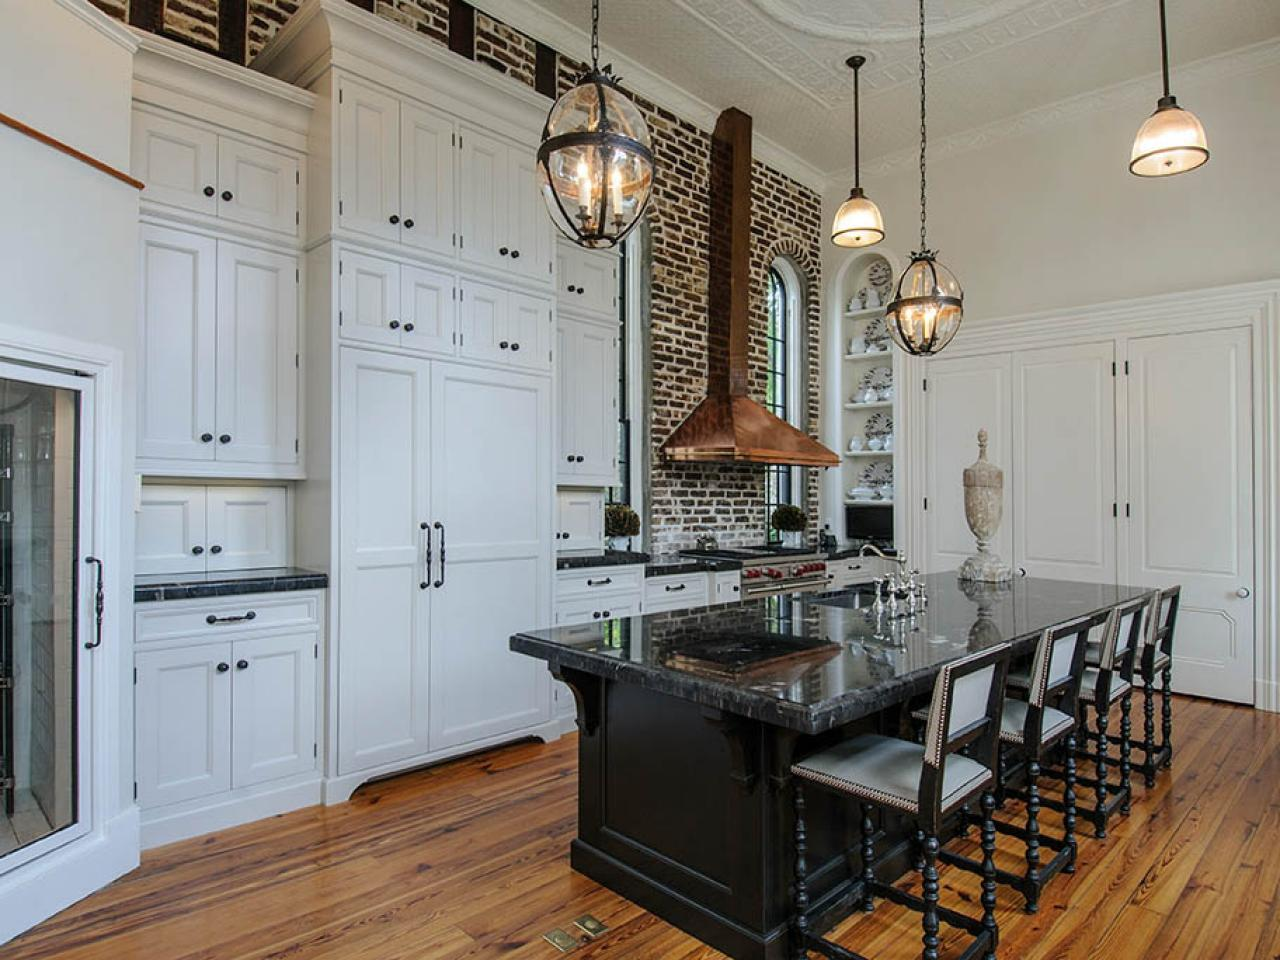 Luxury kitchen design pictures ideas tips from hgtv hgtv for Traditional kitchen cabinet ideas